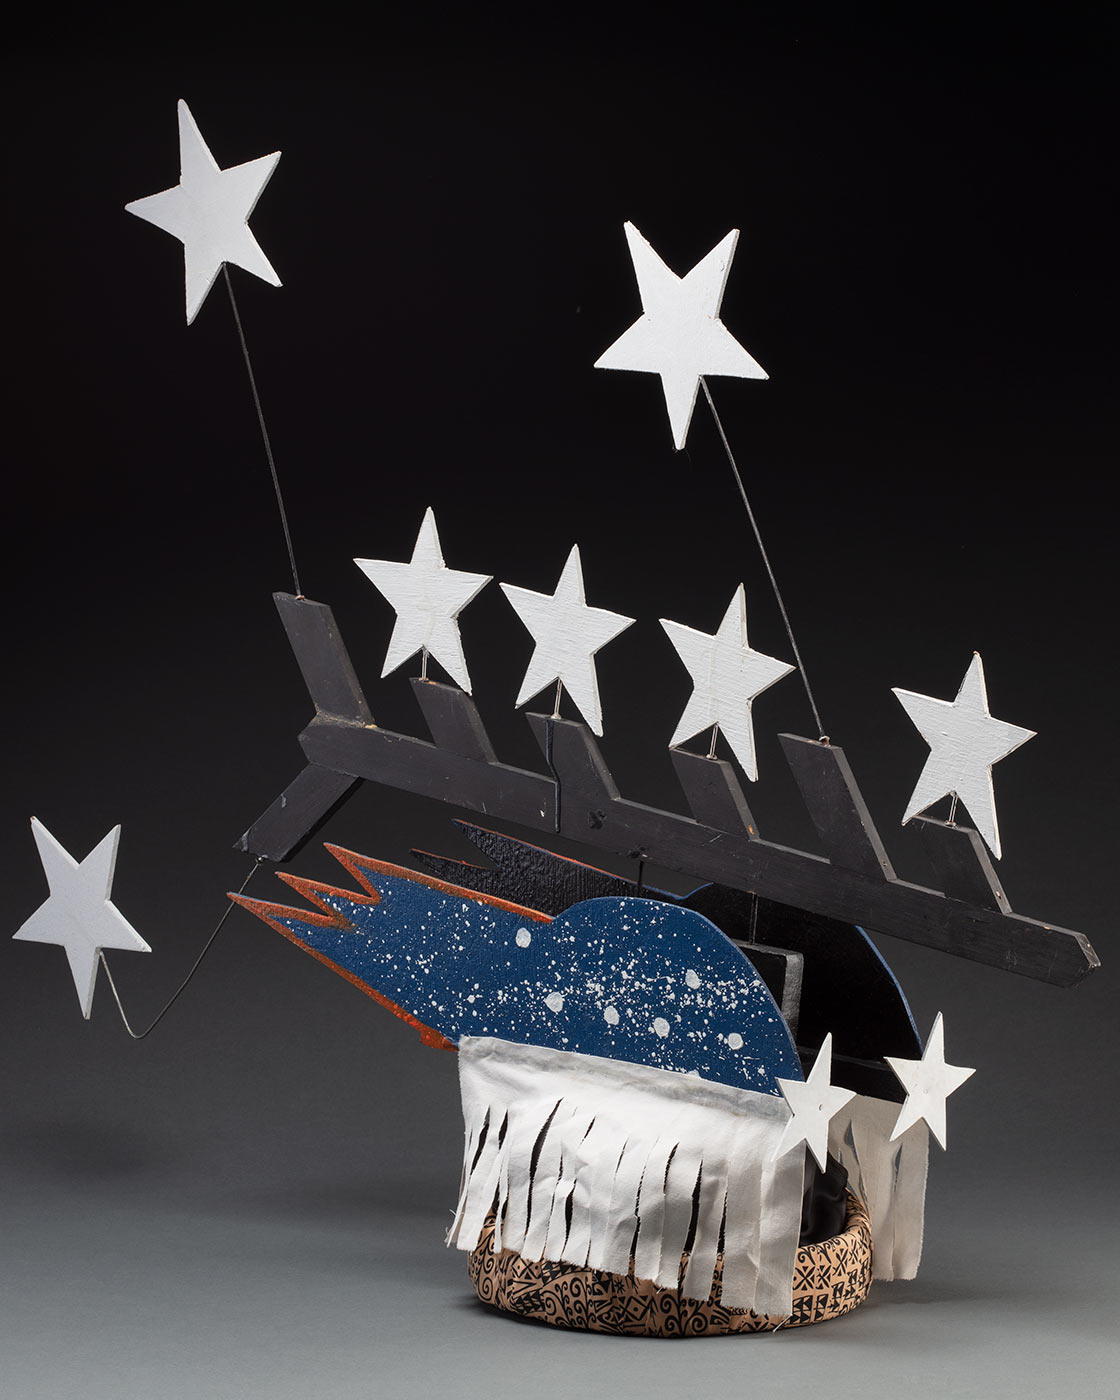 A headdress featuring seven stars protruding from a black painted piece of board forming half a fishbone pattern. It is connected to two pieces of board painted blue with white splatter and seven stars on each side with a white fabric fringe at the bottom. It is all attached to a fabric wrapped headband in the centre.